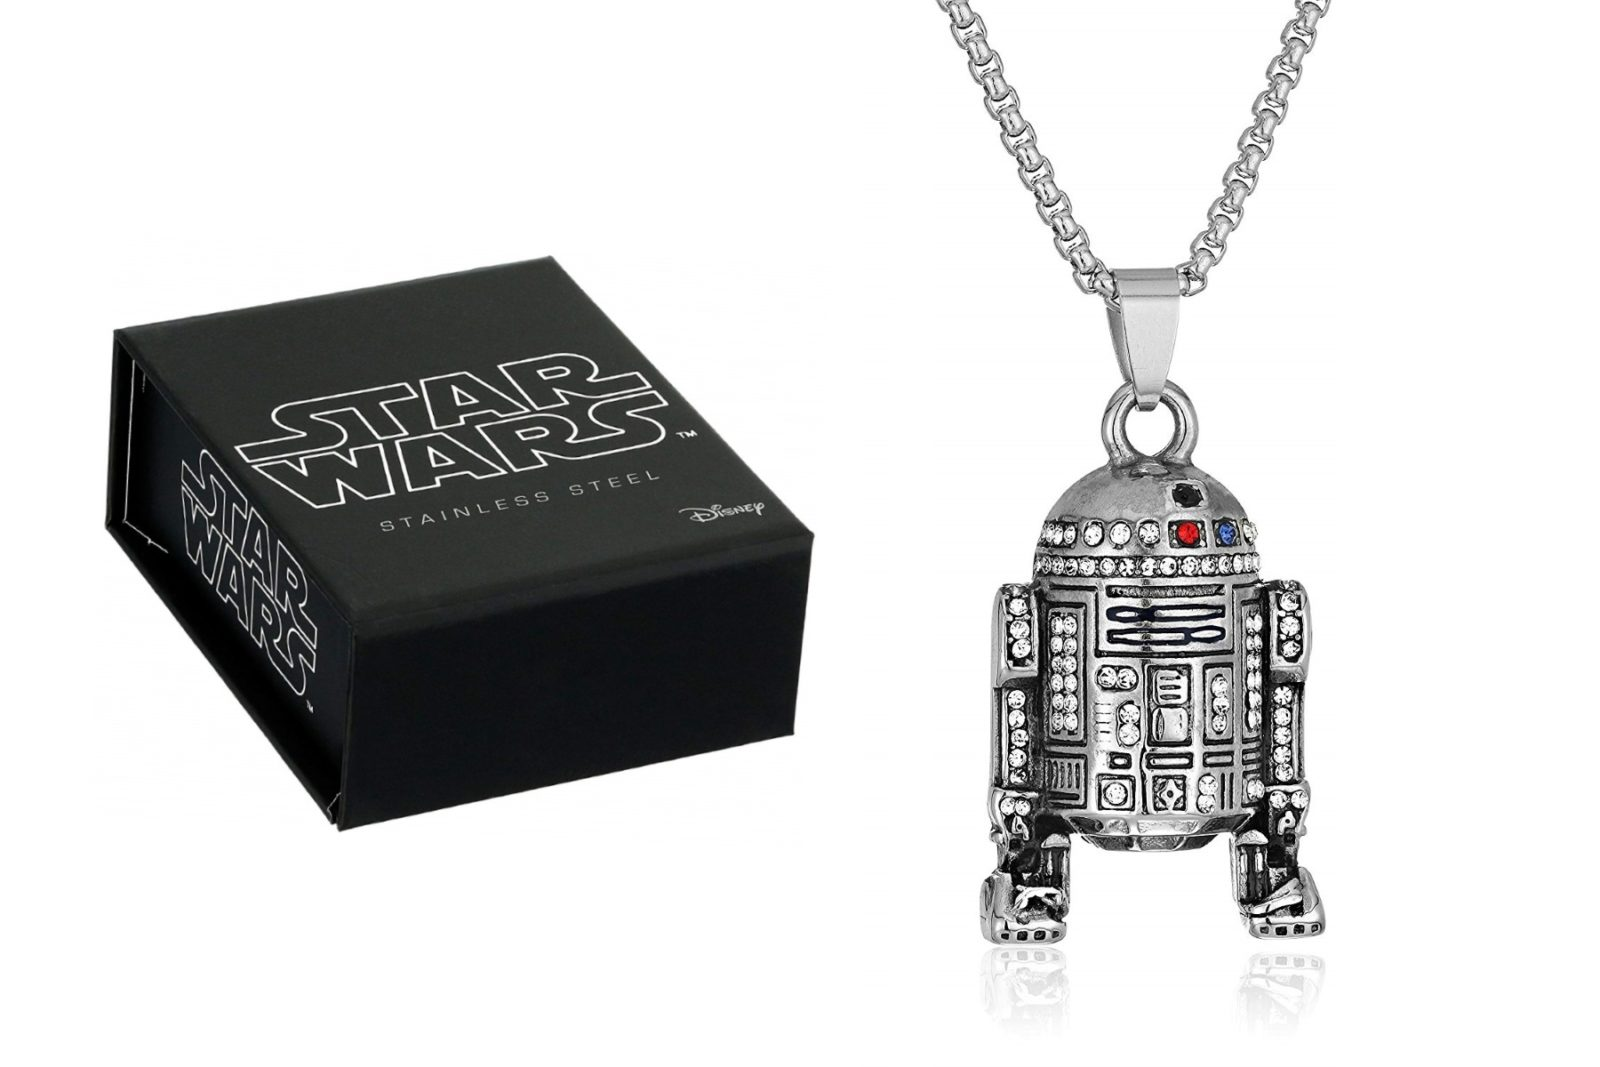 Star Wars R2-D2 Rhinestone Necklace